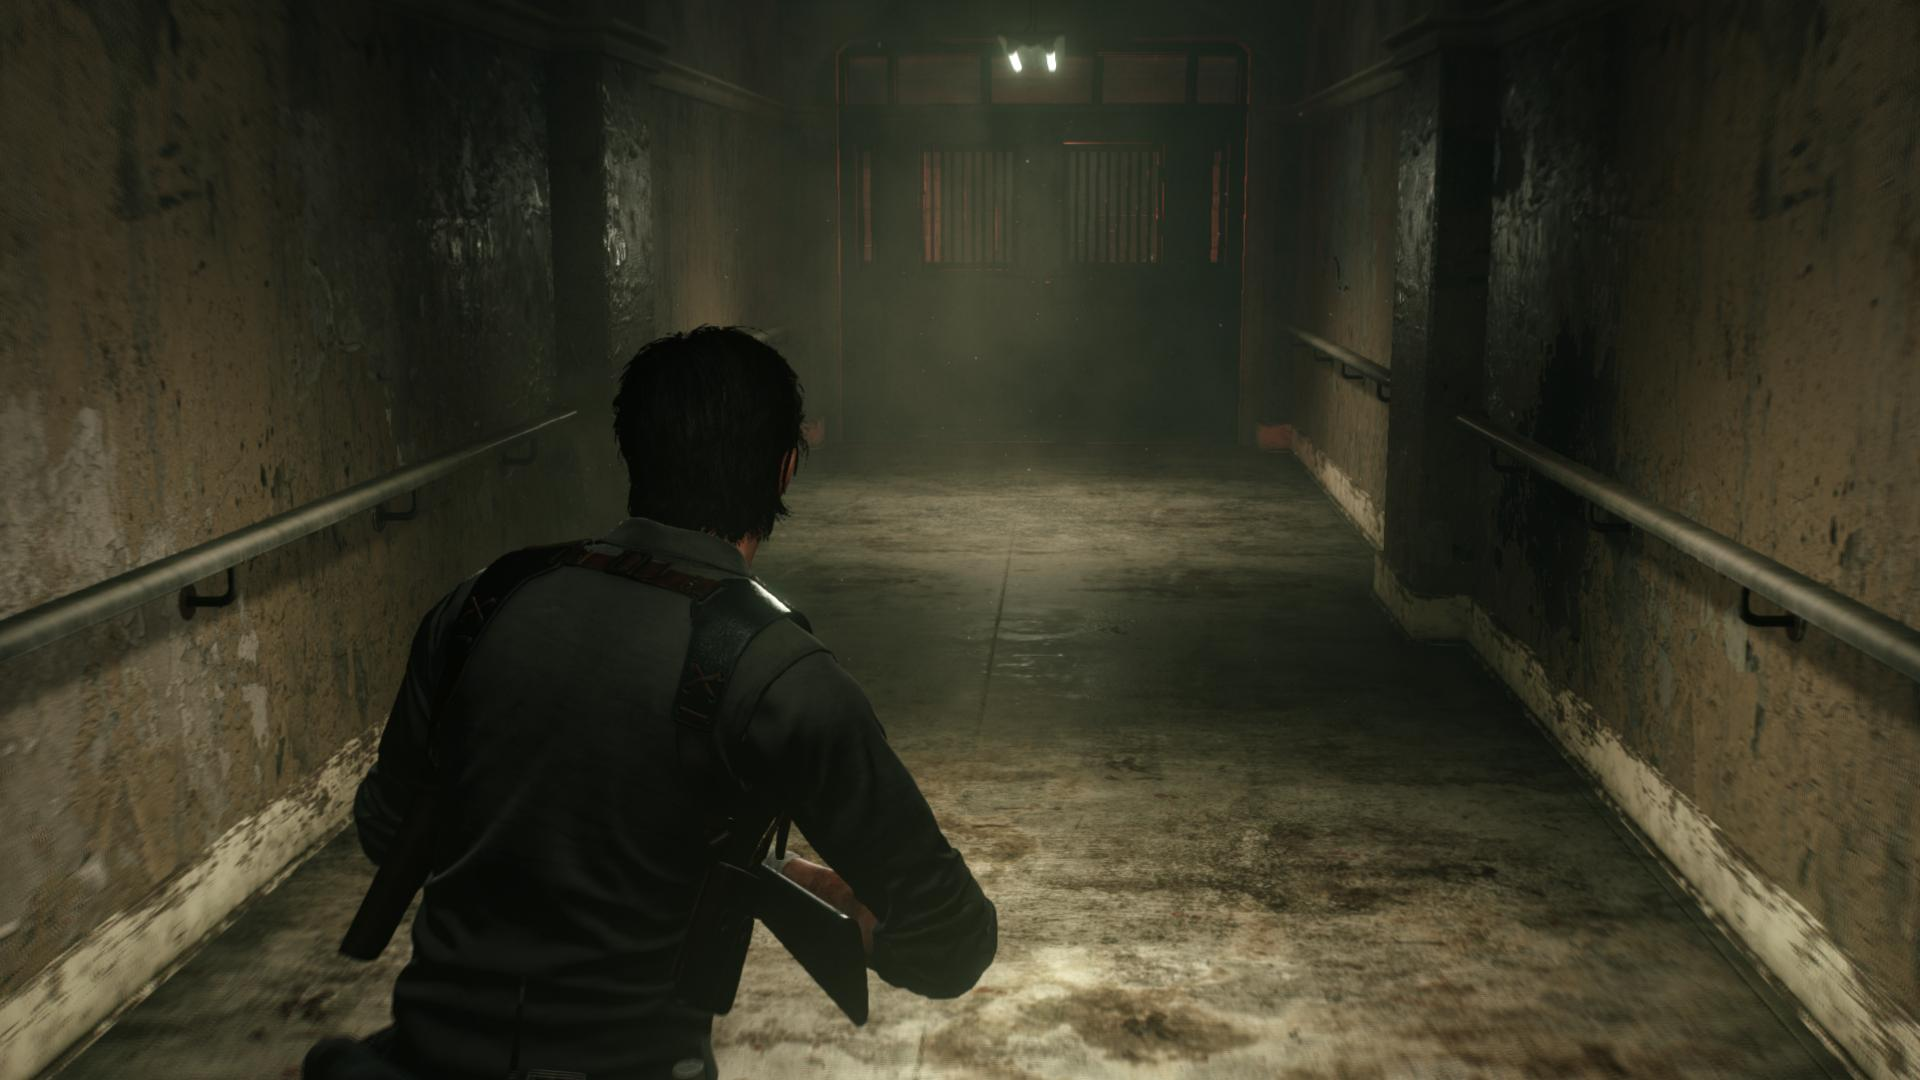 000232.Jpg - Evil Within 2, the